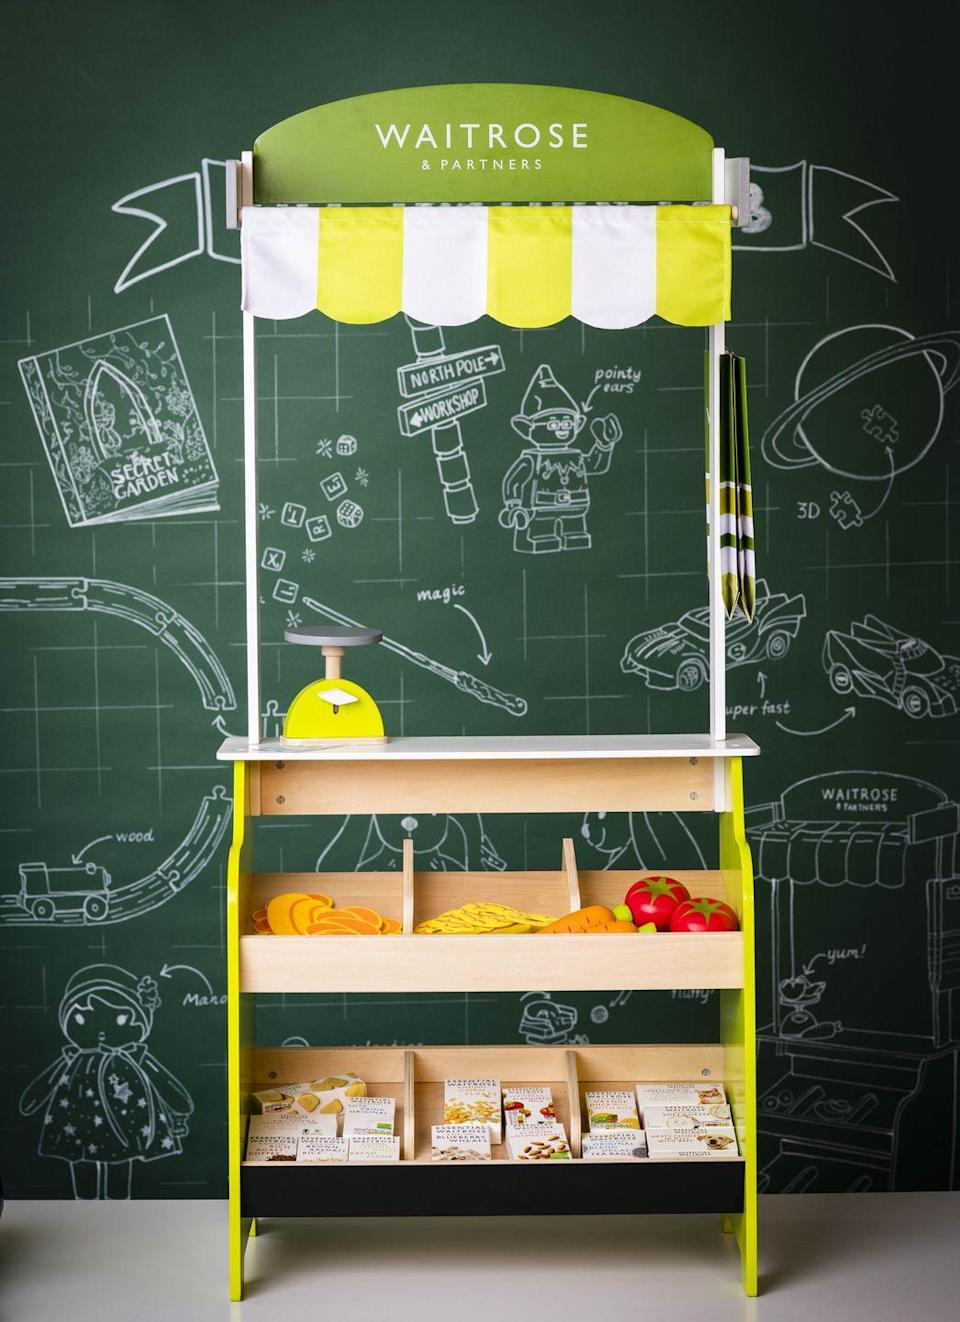 """<p>This mini Waitrose supermarket is so sweet! Featuring shelves for toy food, a Waitrose logo and scales for weighing produce, we're certain it will provide hours of fun. Complete the look with the mini <a href=""""https://go.redirectingat.com?id=127X1599956&url=https%3A%2F%2Fwww.johnlewis.com%2Fjohn-lewis-partners-waitrose-shopping-trolley%2Fp4351590&sref=https%3A%2F%2Fwww.housebeautiful.com%2Fuk%2Flifestyle%2Fshopping%2Fg33979702%2Fjohn-lewis-christmas-toys%2F"""" rel=""""nofollow noopener"""" target=""""_blank"""" data-ylk=""""slk:Waitrose trolley"""" class=""""link rapid-noclick-resp"""">Waitrose trolley</a>. </p><p><a class=""""link rapid-noclick-resp"""" href=""""https://go.redirectingat.com?id=127X1599956&url=https%3A%2F%2Fwww.johnlewis.com%2Fbaby-child%2Fshop-toys%2Fc19051712&sref=https%3A%2F%2Fwww.housebeautiful.com%2Fuk%2Flifestyle%2Fshopping%2Fg33979702%2Fjohn-lewis-christmas-toys%2F"""" rel=""""nofollow noopener"""" target=""""_blank"""" data-ylk=""""slk:SHOP TOYS AT JOHN LEWIS"""">SHOP TOYS AT JOHN LEWIS</a></p>"""